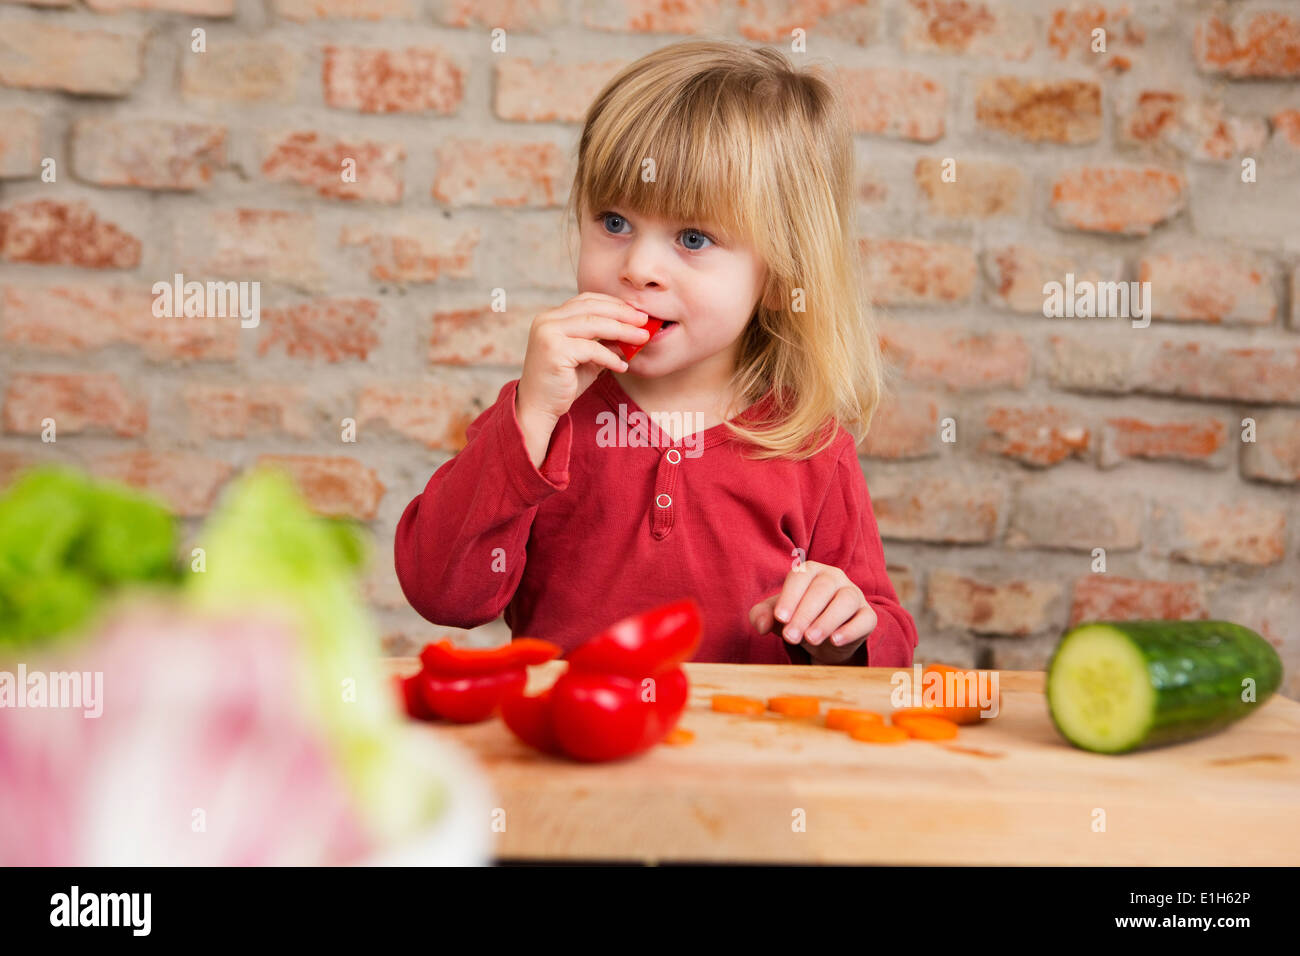 Two year old girl in kitchen eating raw vegetables - Stock Image